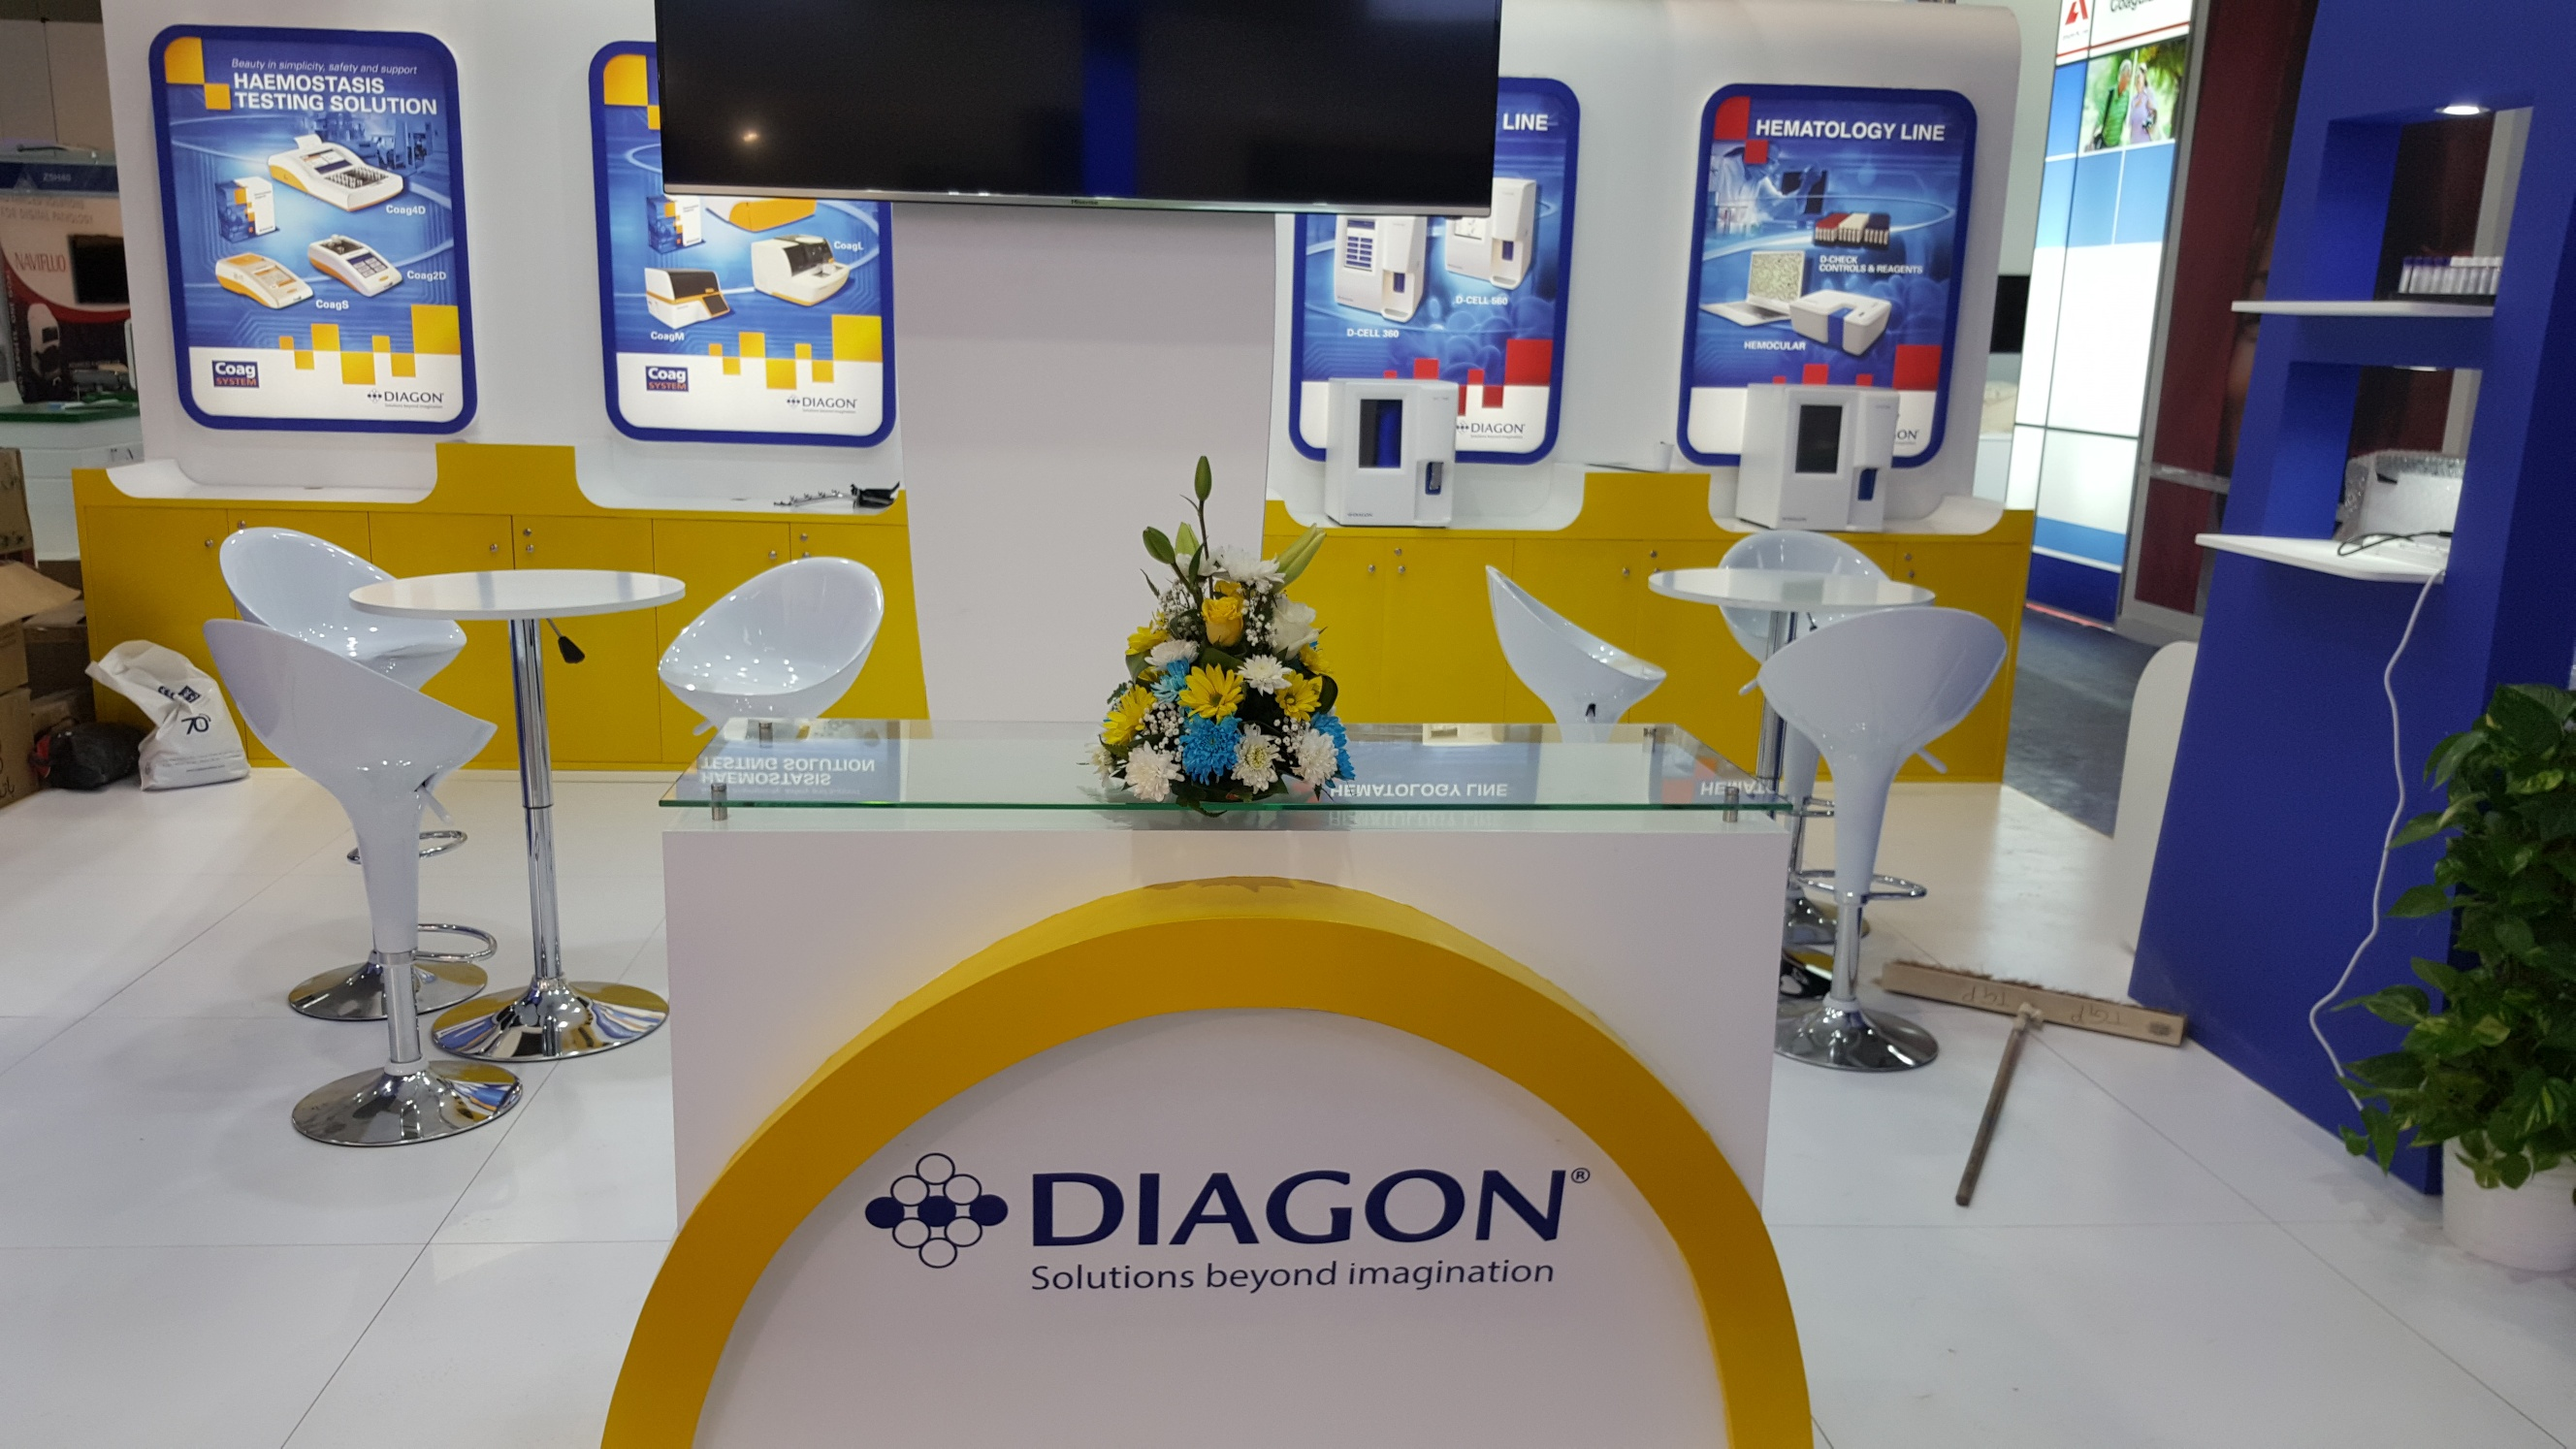 MEDLAB Exhibition Dubai. DIAGON- Hungary.